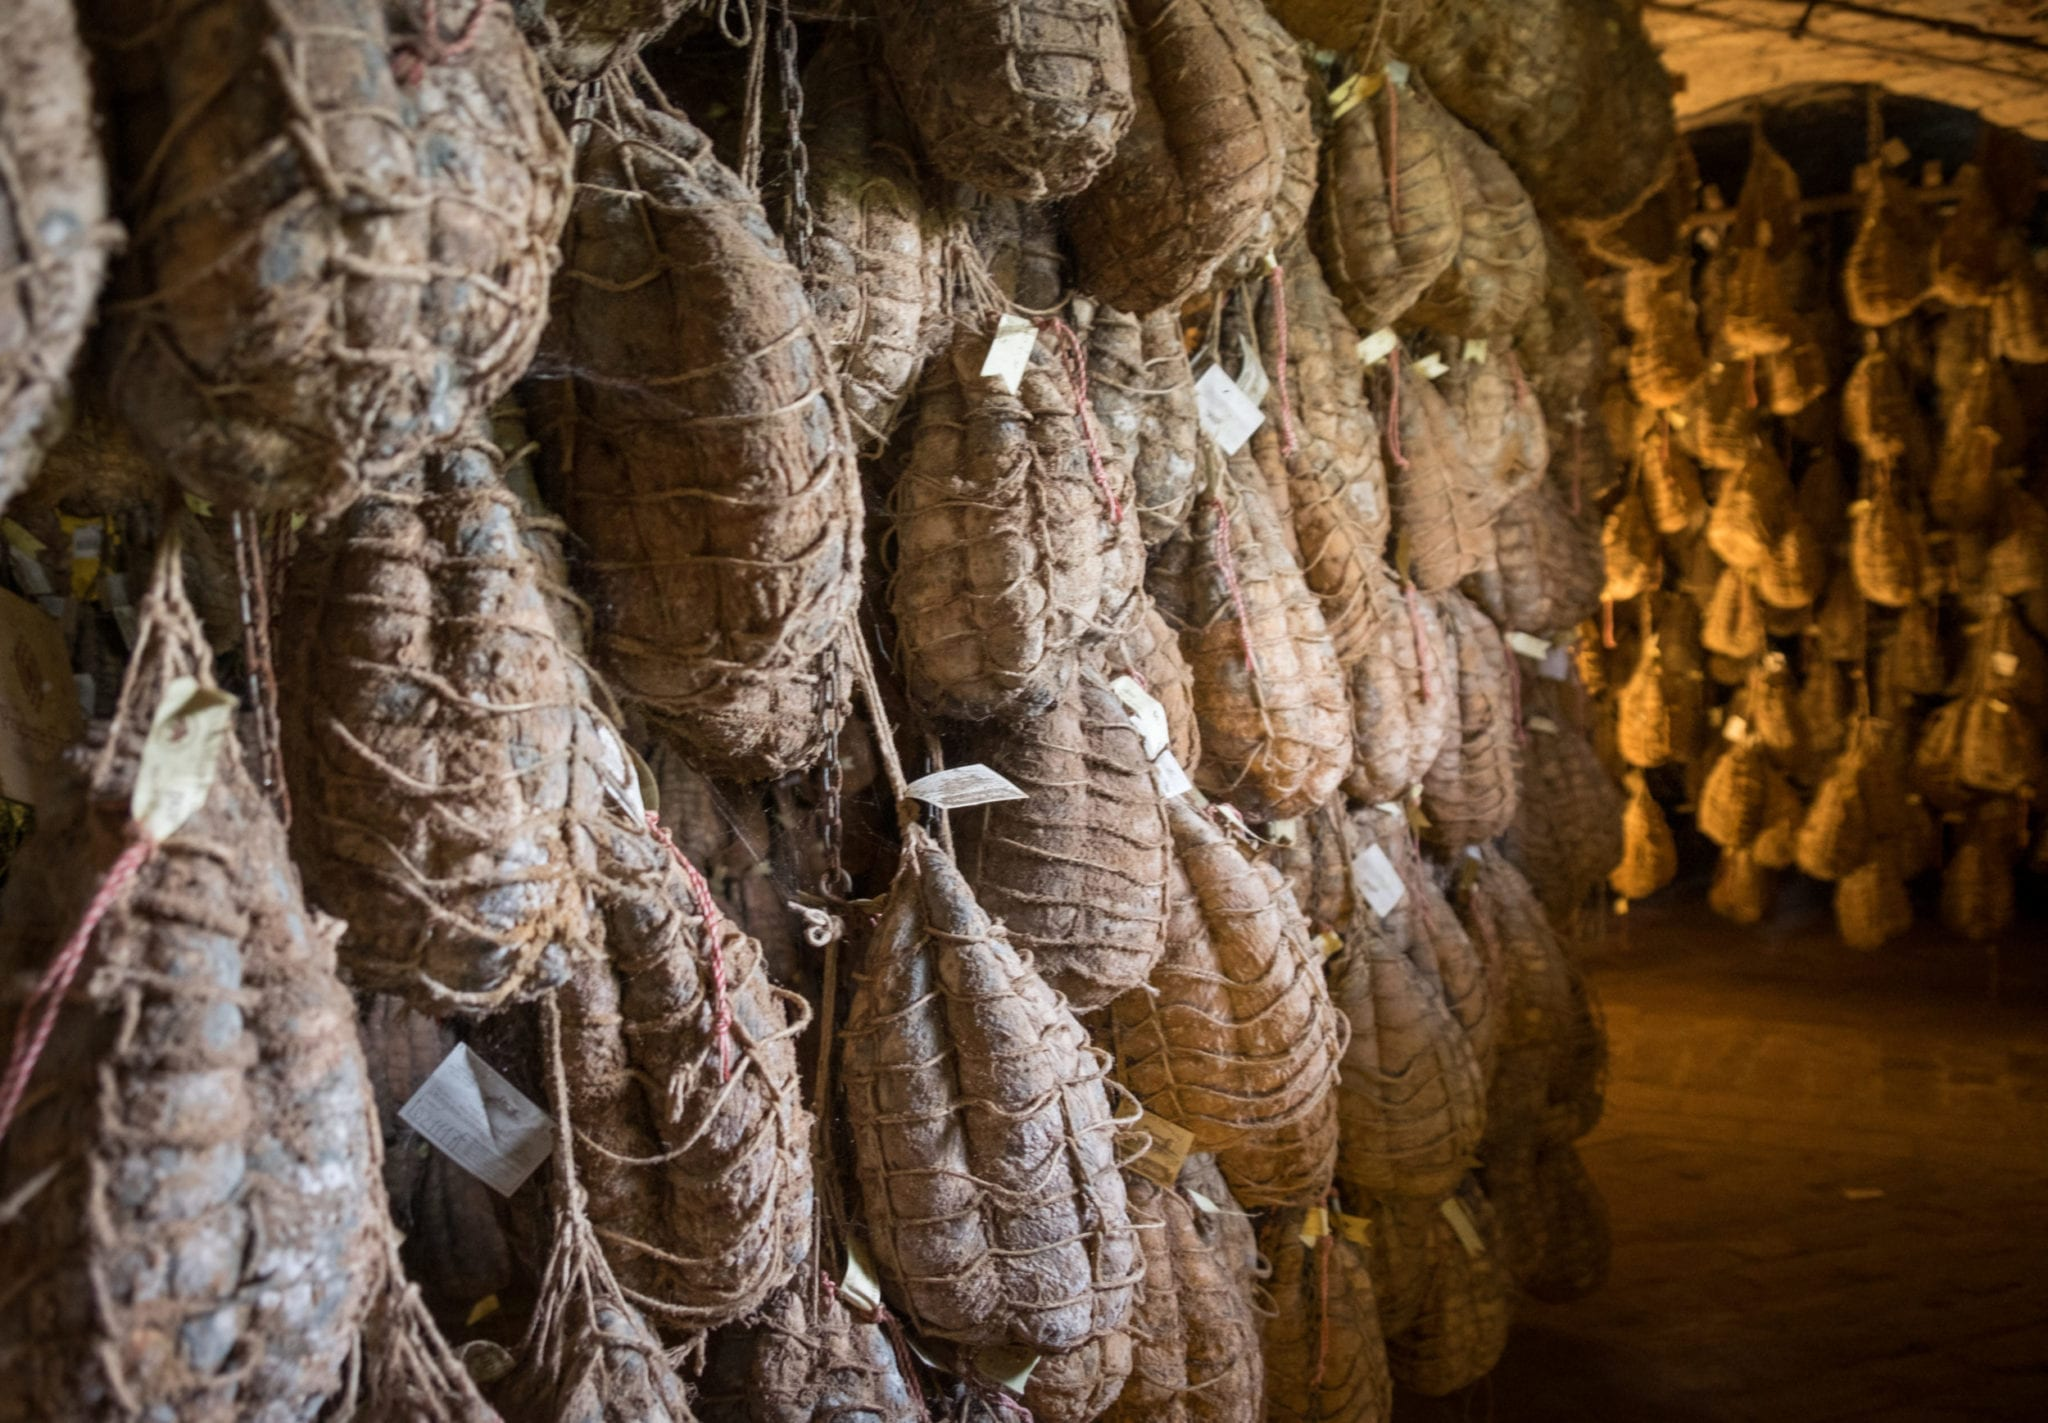 Racks of Culatello hams hanging in a cellar.